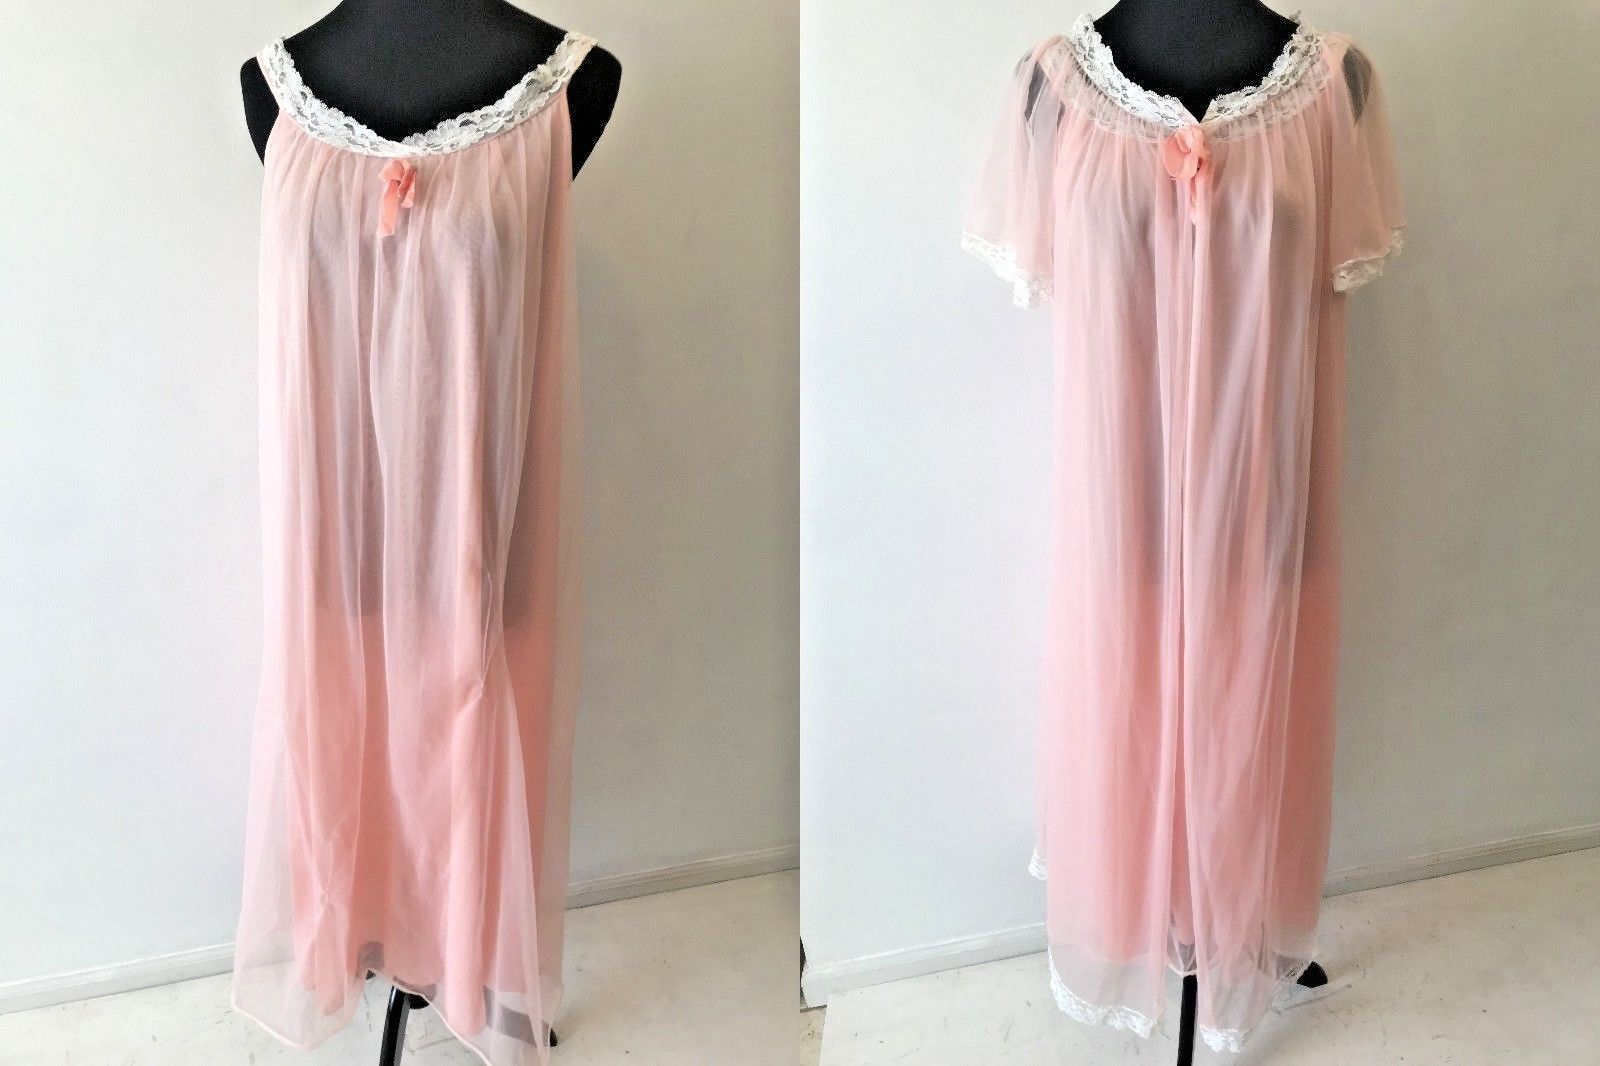 Vintage 1960s Sears Peignoir Nightgown Robe and 44 similar items. 57 d0cdfc942